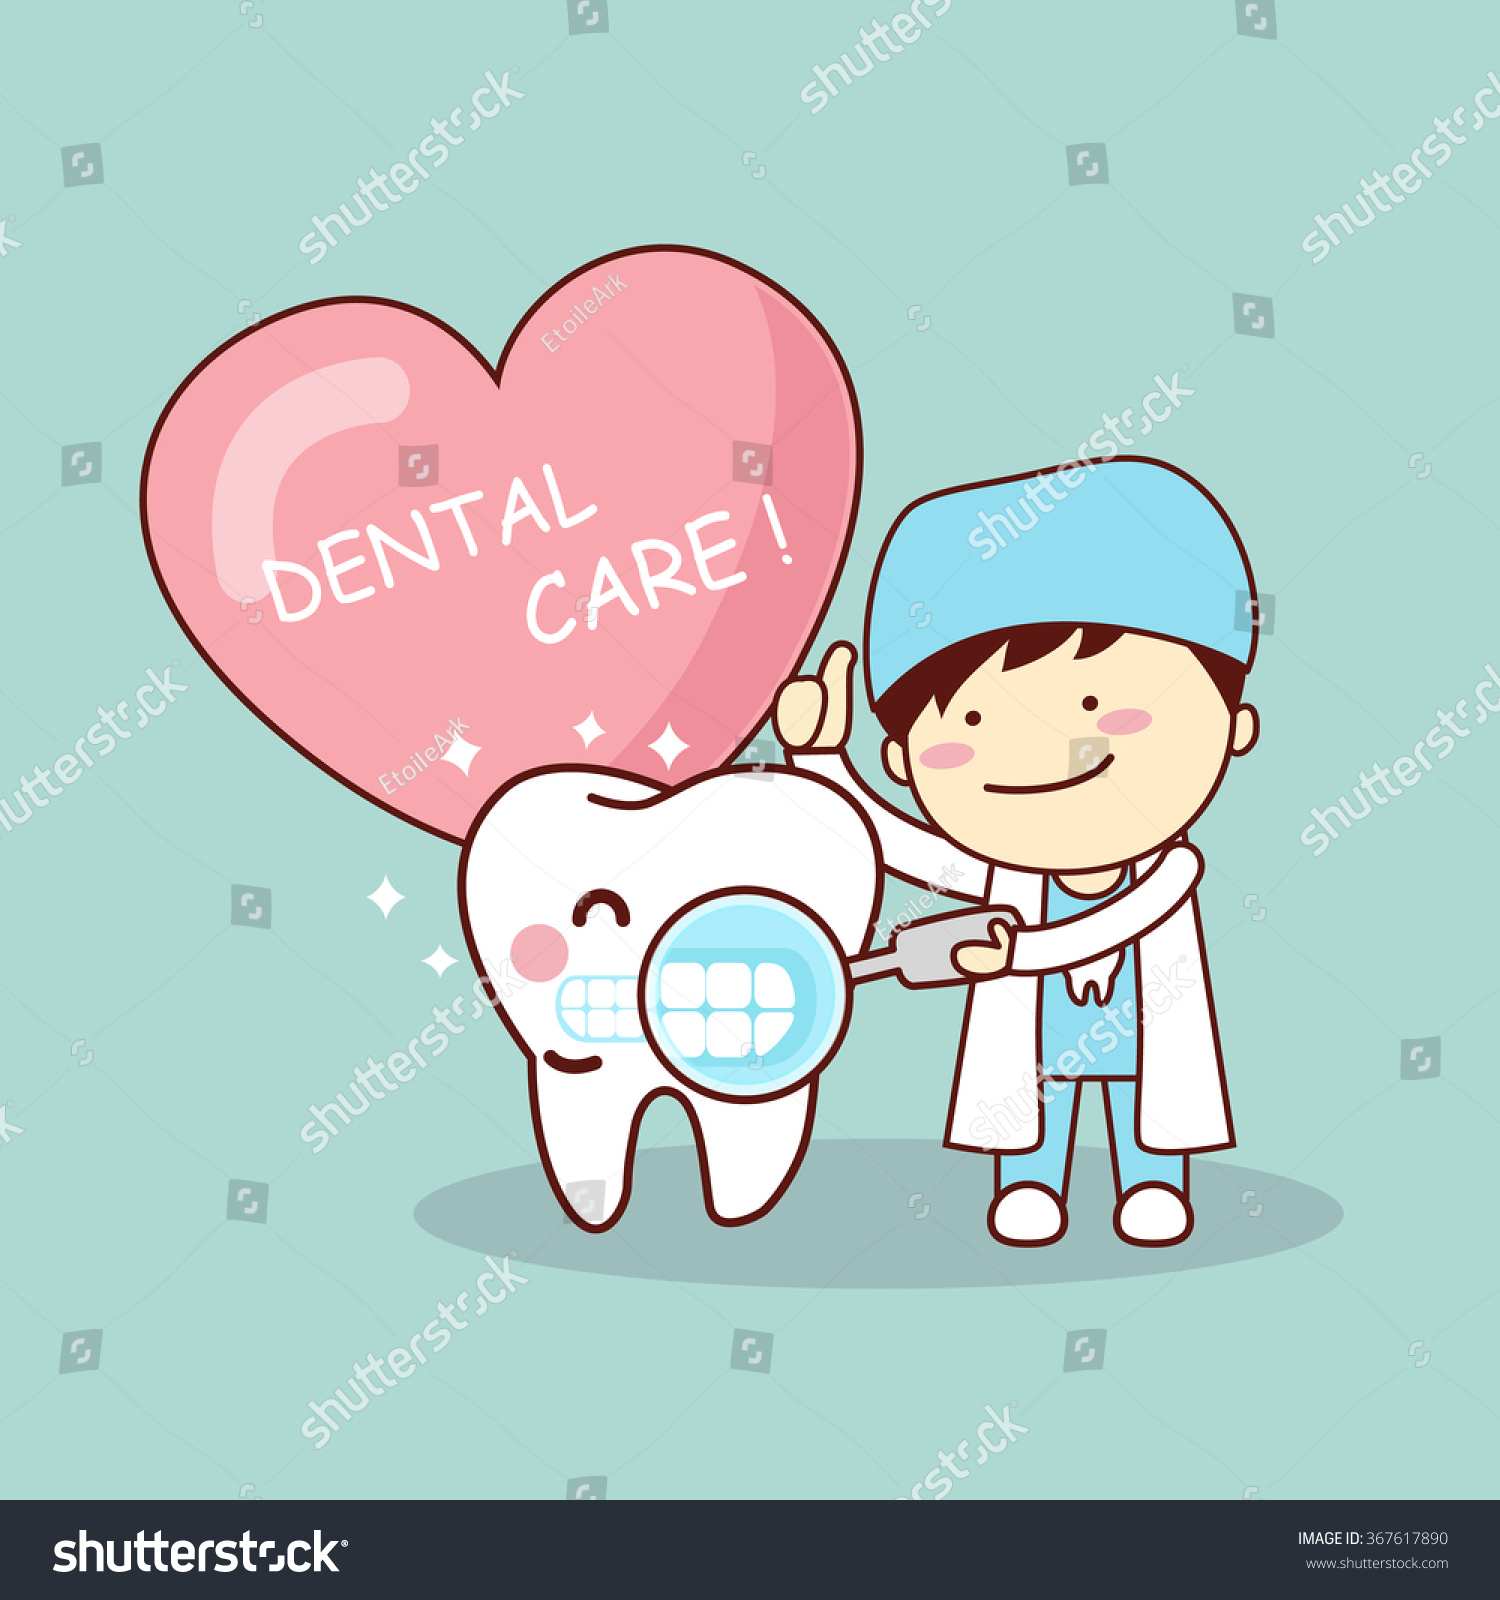 Image result for dentist cartoon